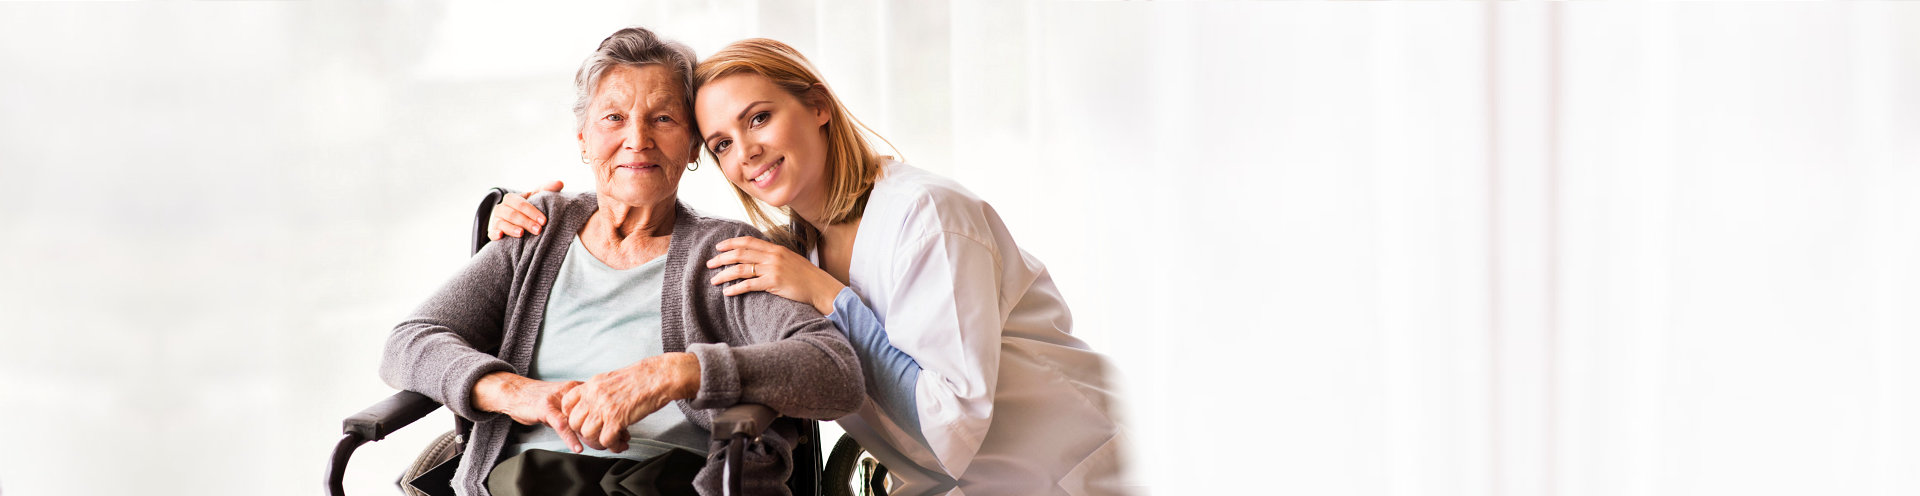 caregiver and patient both smiling